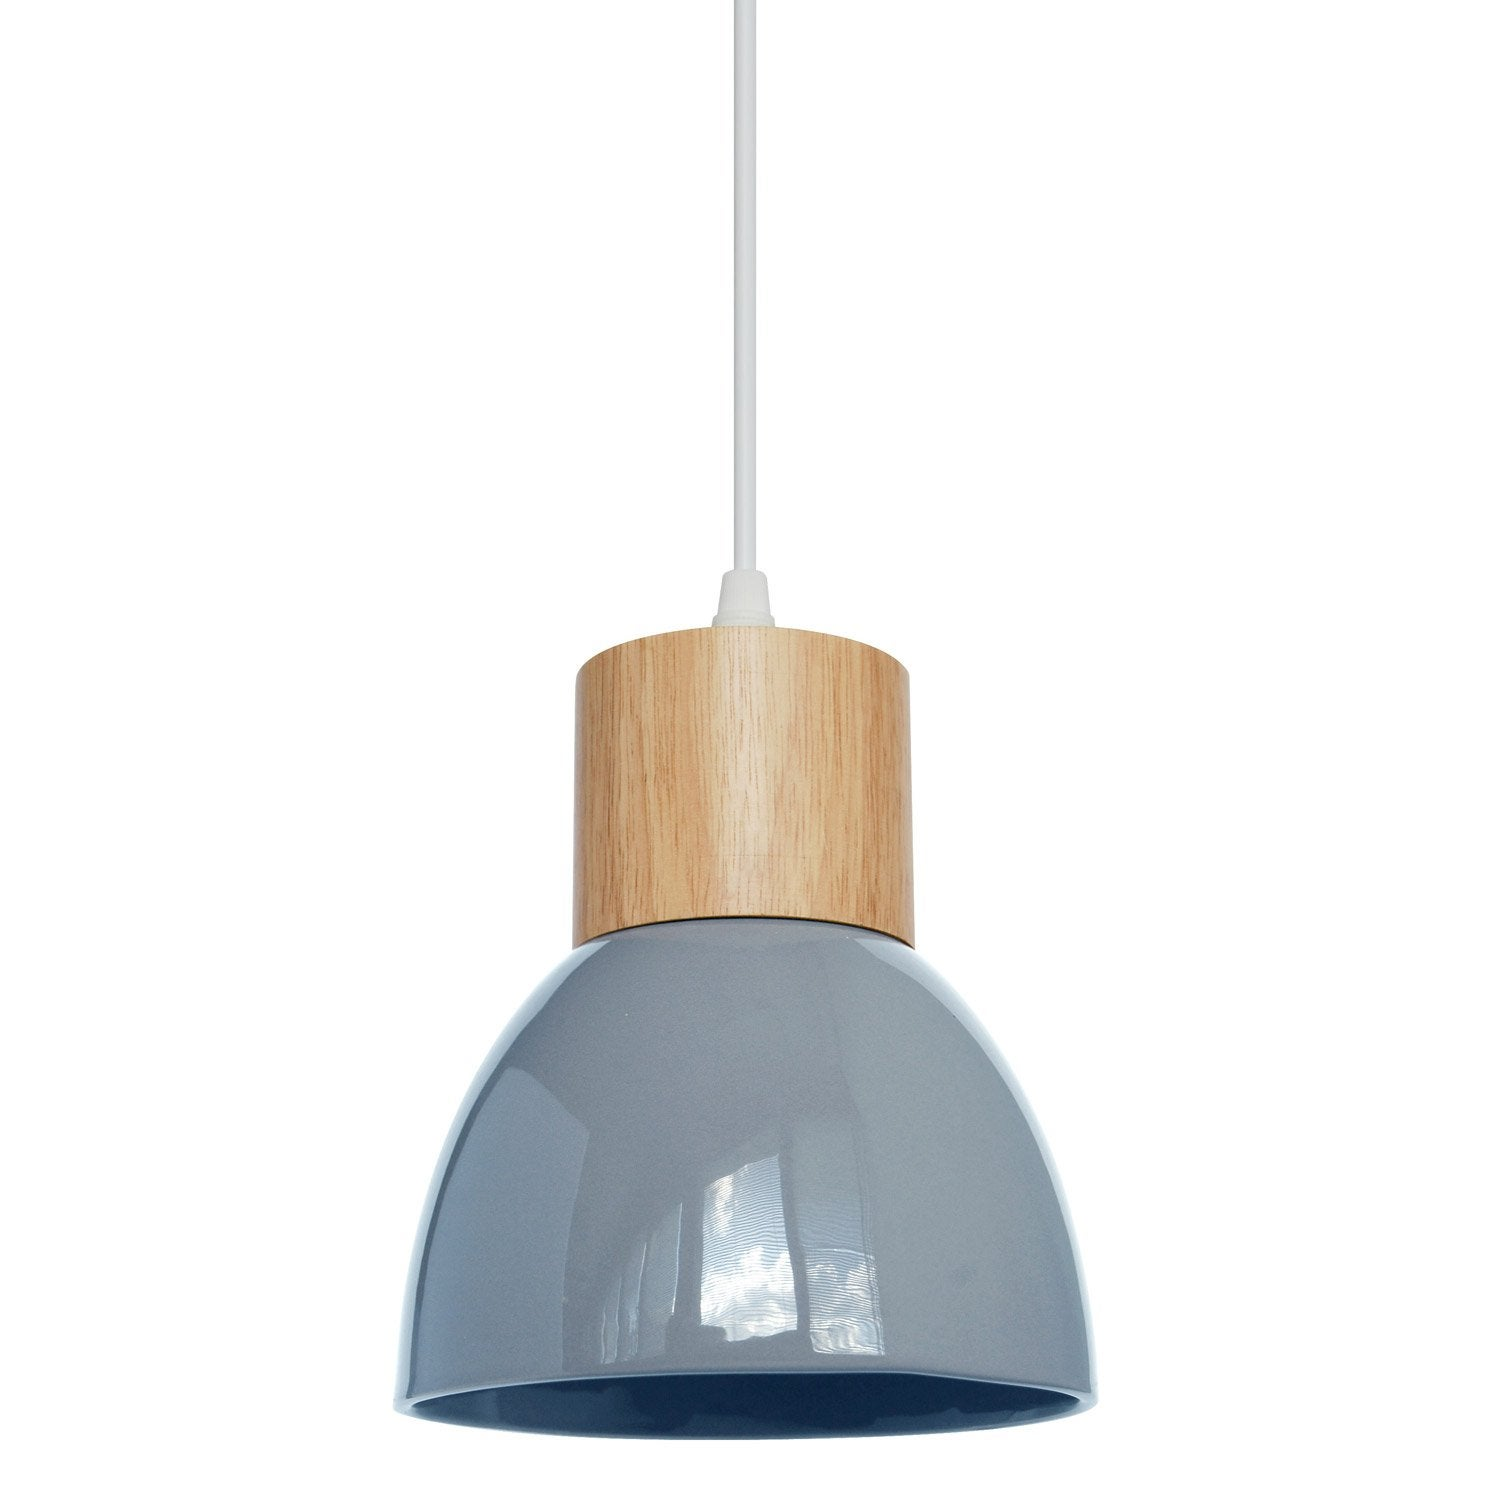 Suspension, e14 design Wilma céramique bleu 1 x 40 W SEYNAVE